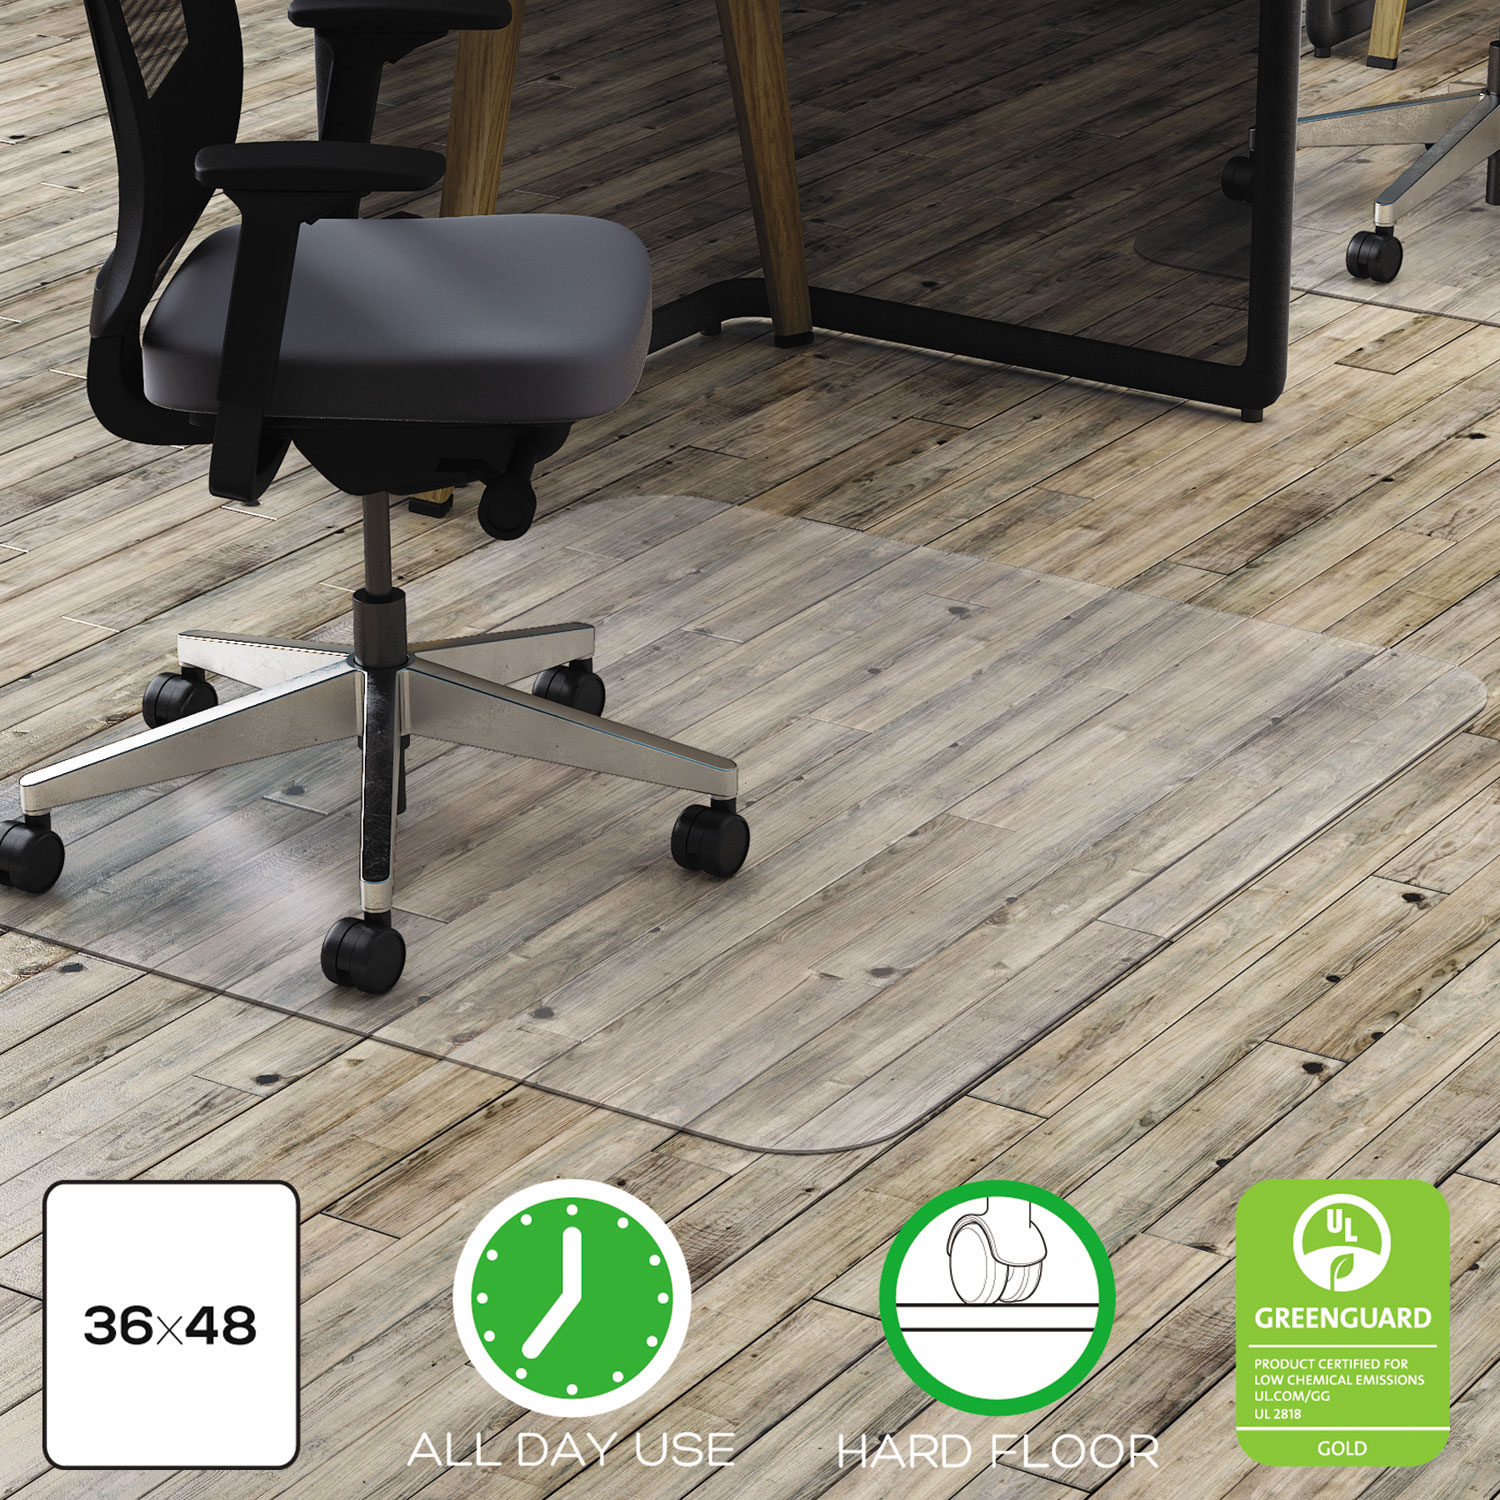 clear polycarbonate all day use chair mat for hard floor by